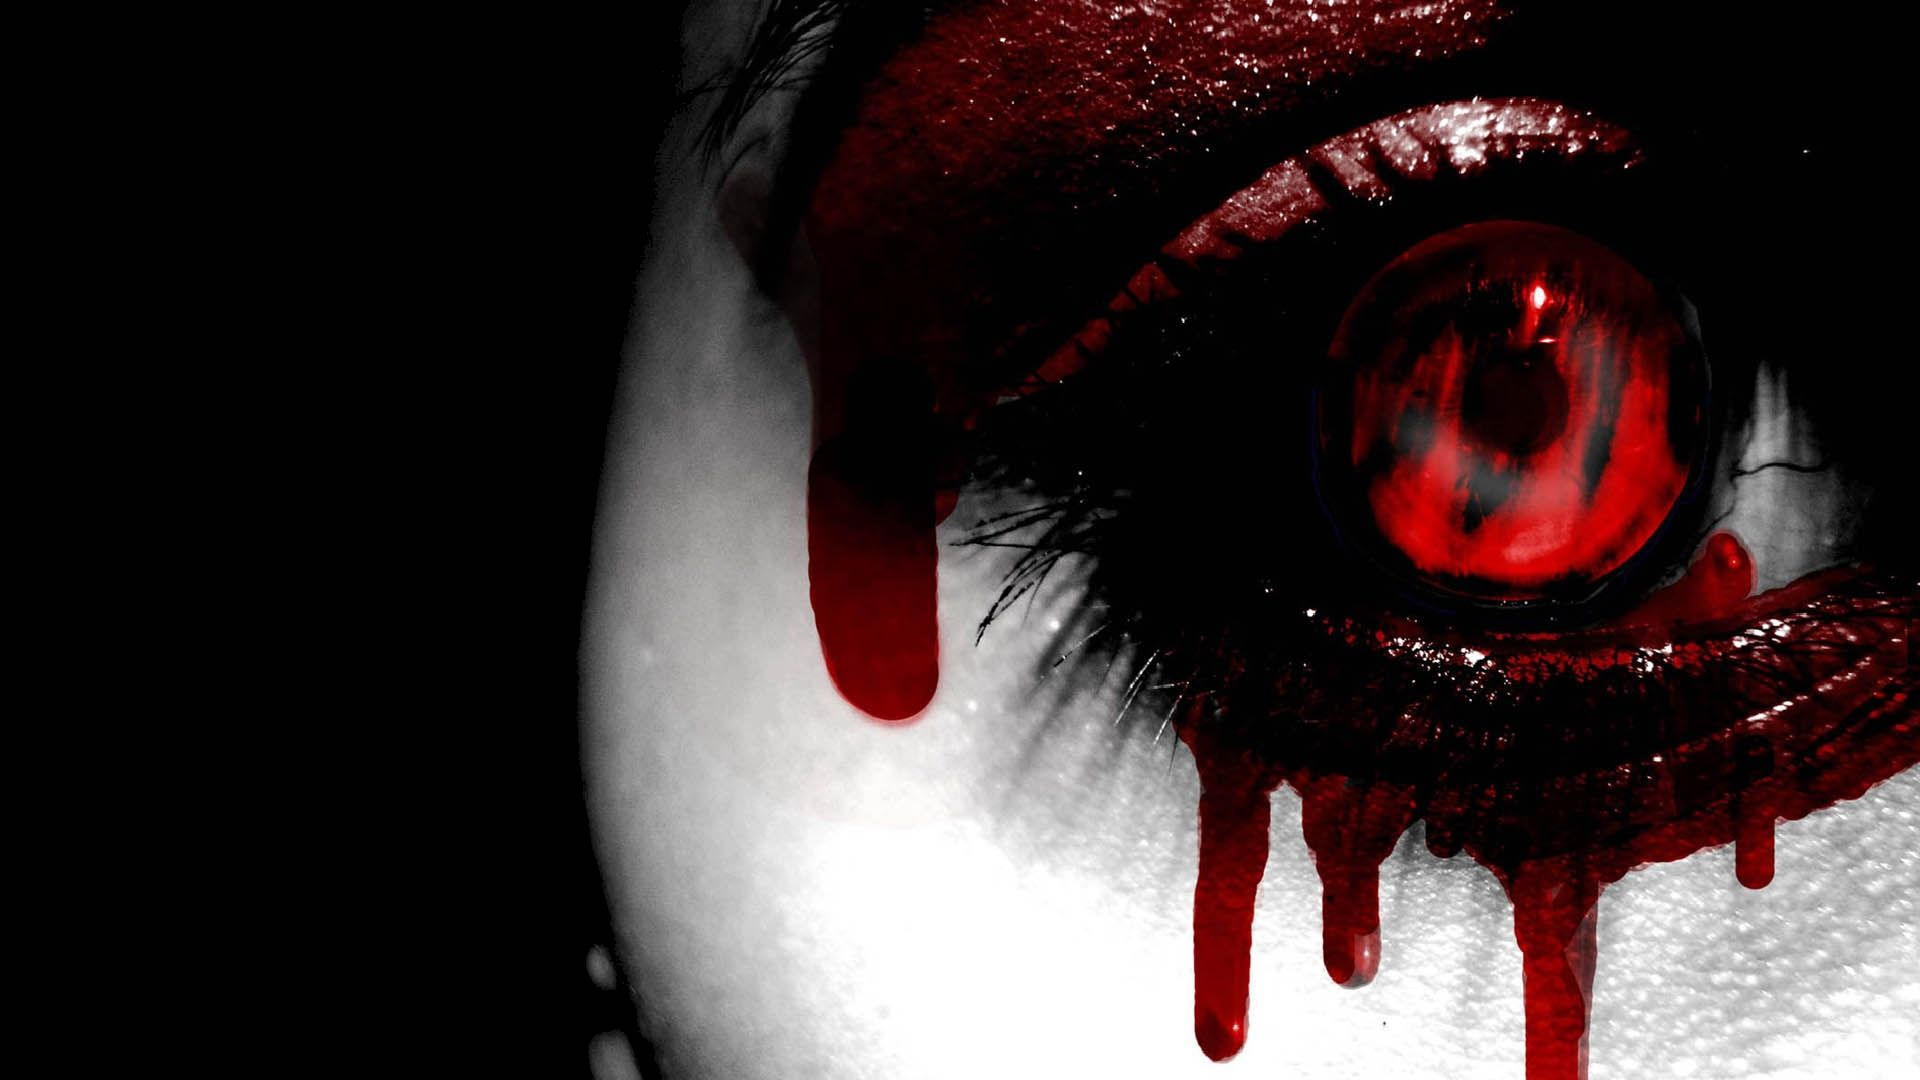 807 Creepy Wallpapers Creepy Backgrounds Page 12